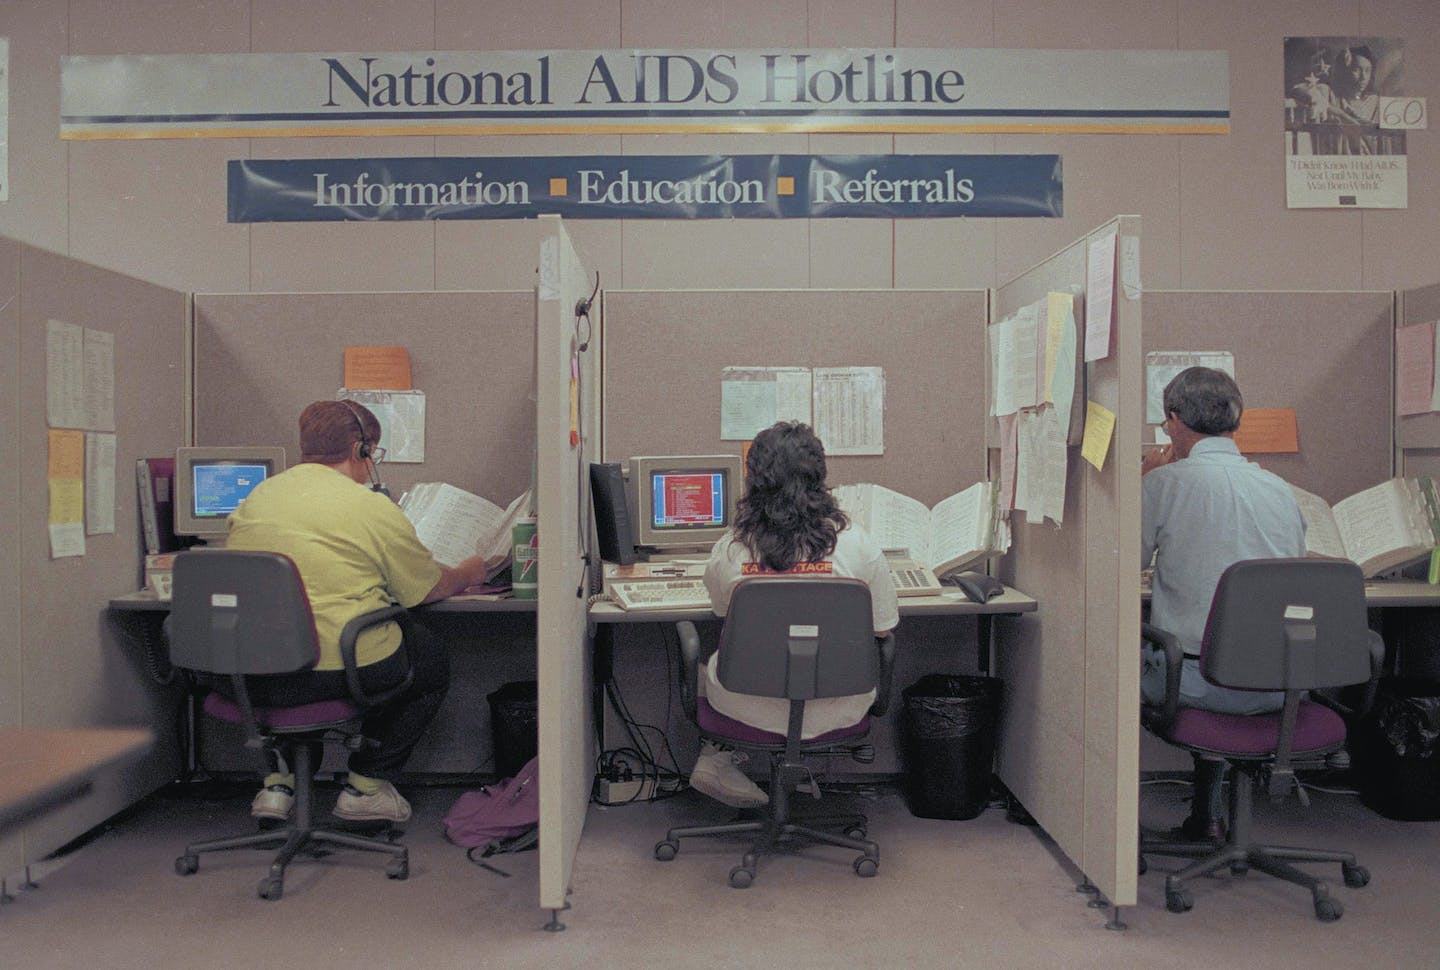 Three people at cubicle desks under a banner reading 'National AIDS Hotline - Information, Education, Referrals.'